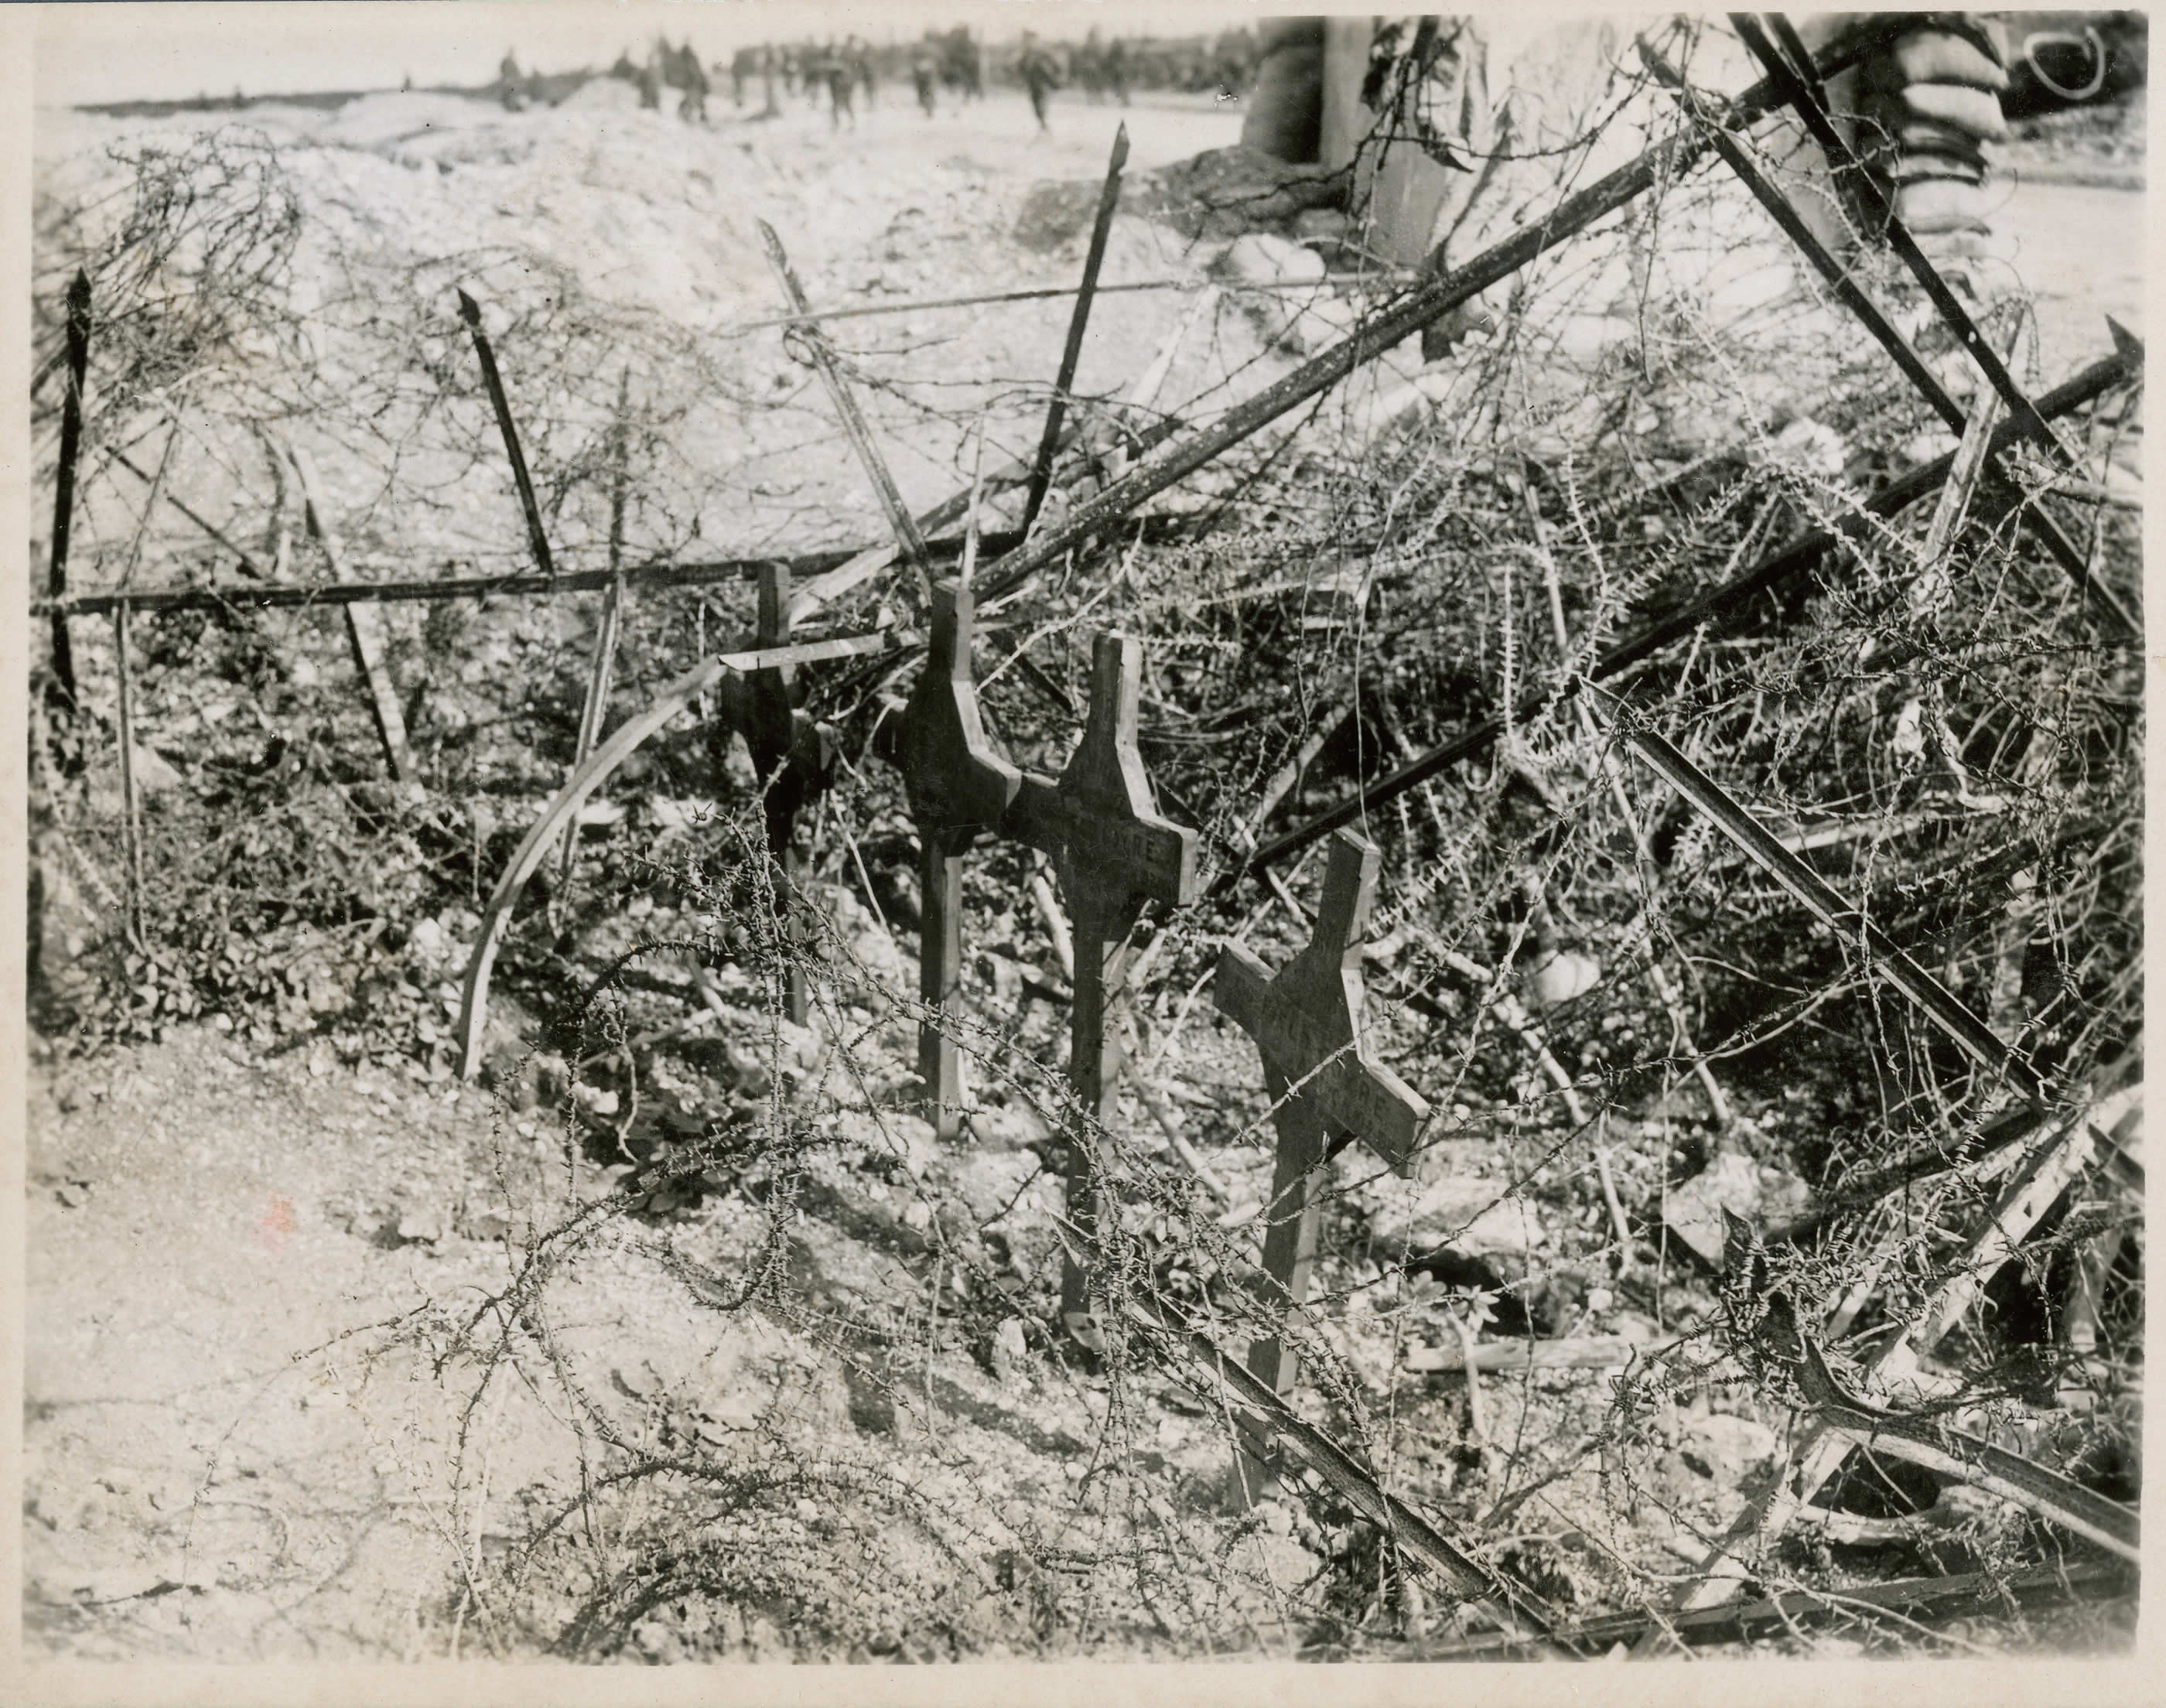 Beneath Barbed Wire